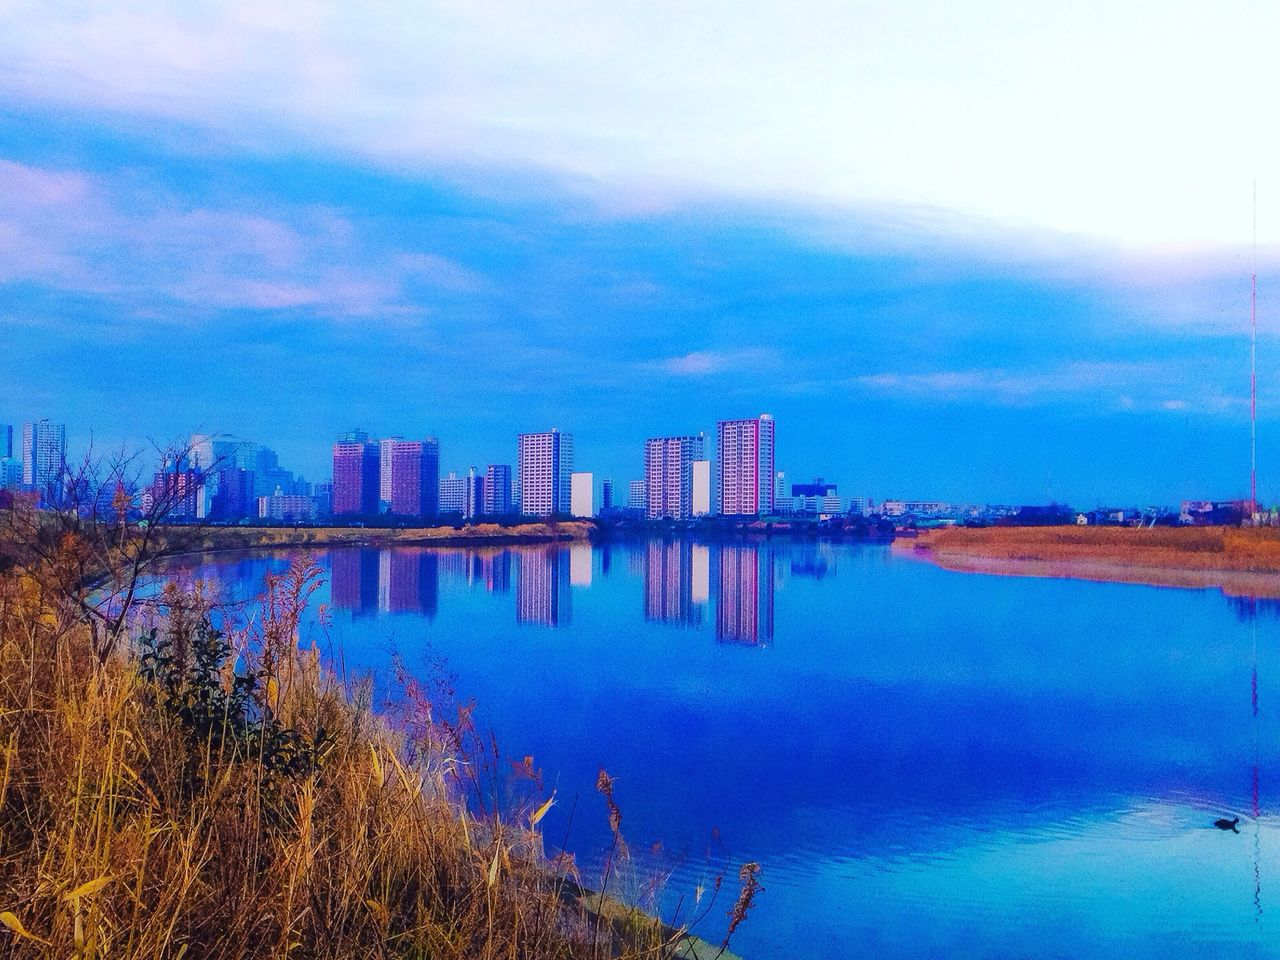 sky, architecture, built structure, building exterior, reflection, cloud - sky, water, skyscraper, no people, outdoors, city, modern, nature, day, urban skyline, cityscape, tree